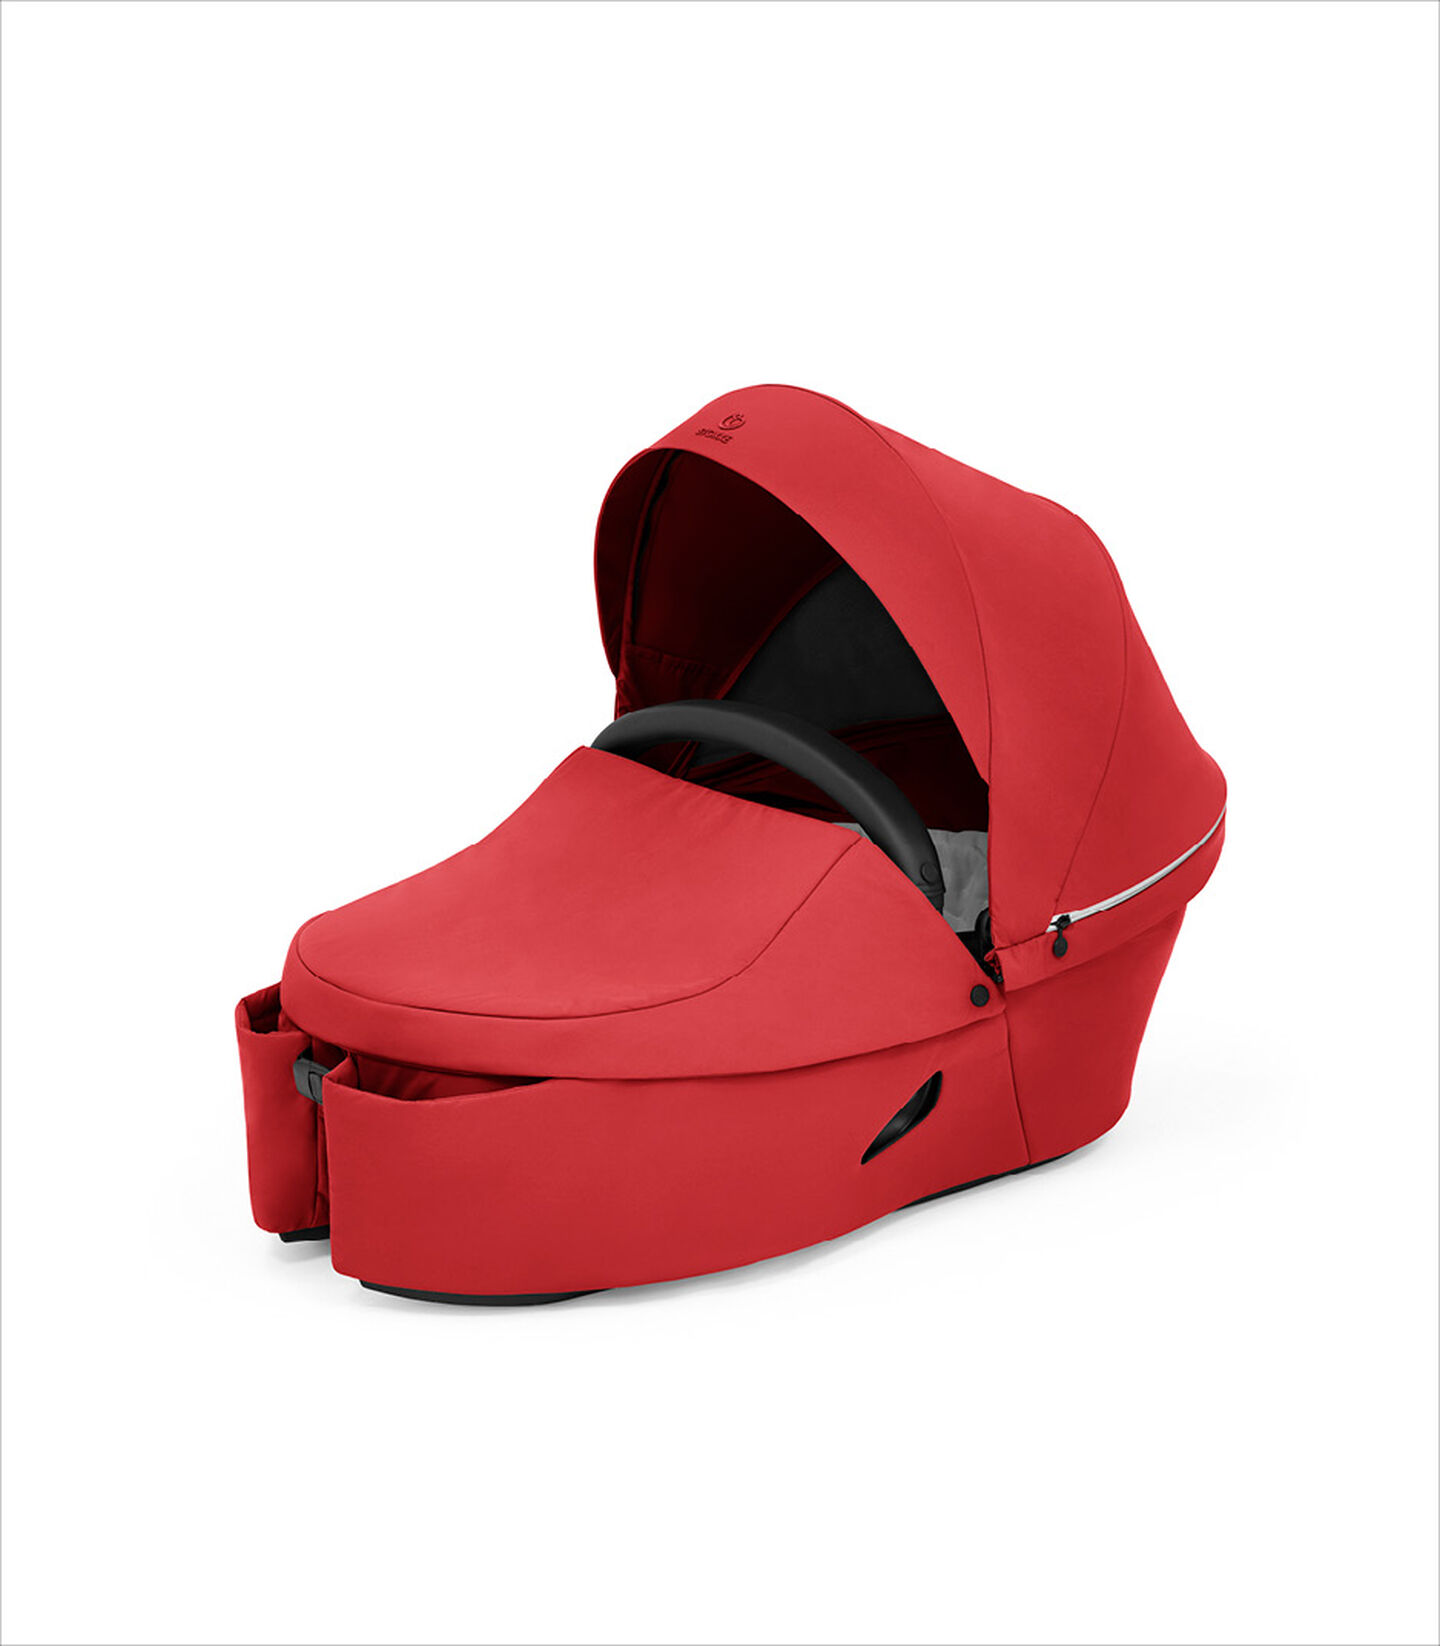 Stokke® Xplory® X Carry Cot Ruby Red, Рубиново-красный, mainview view 2